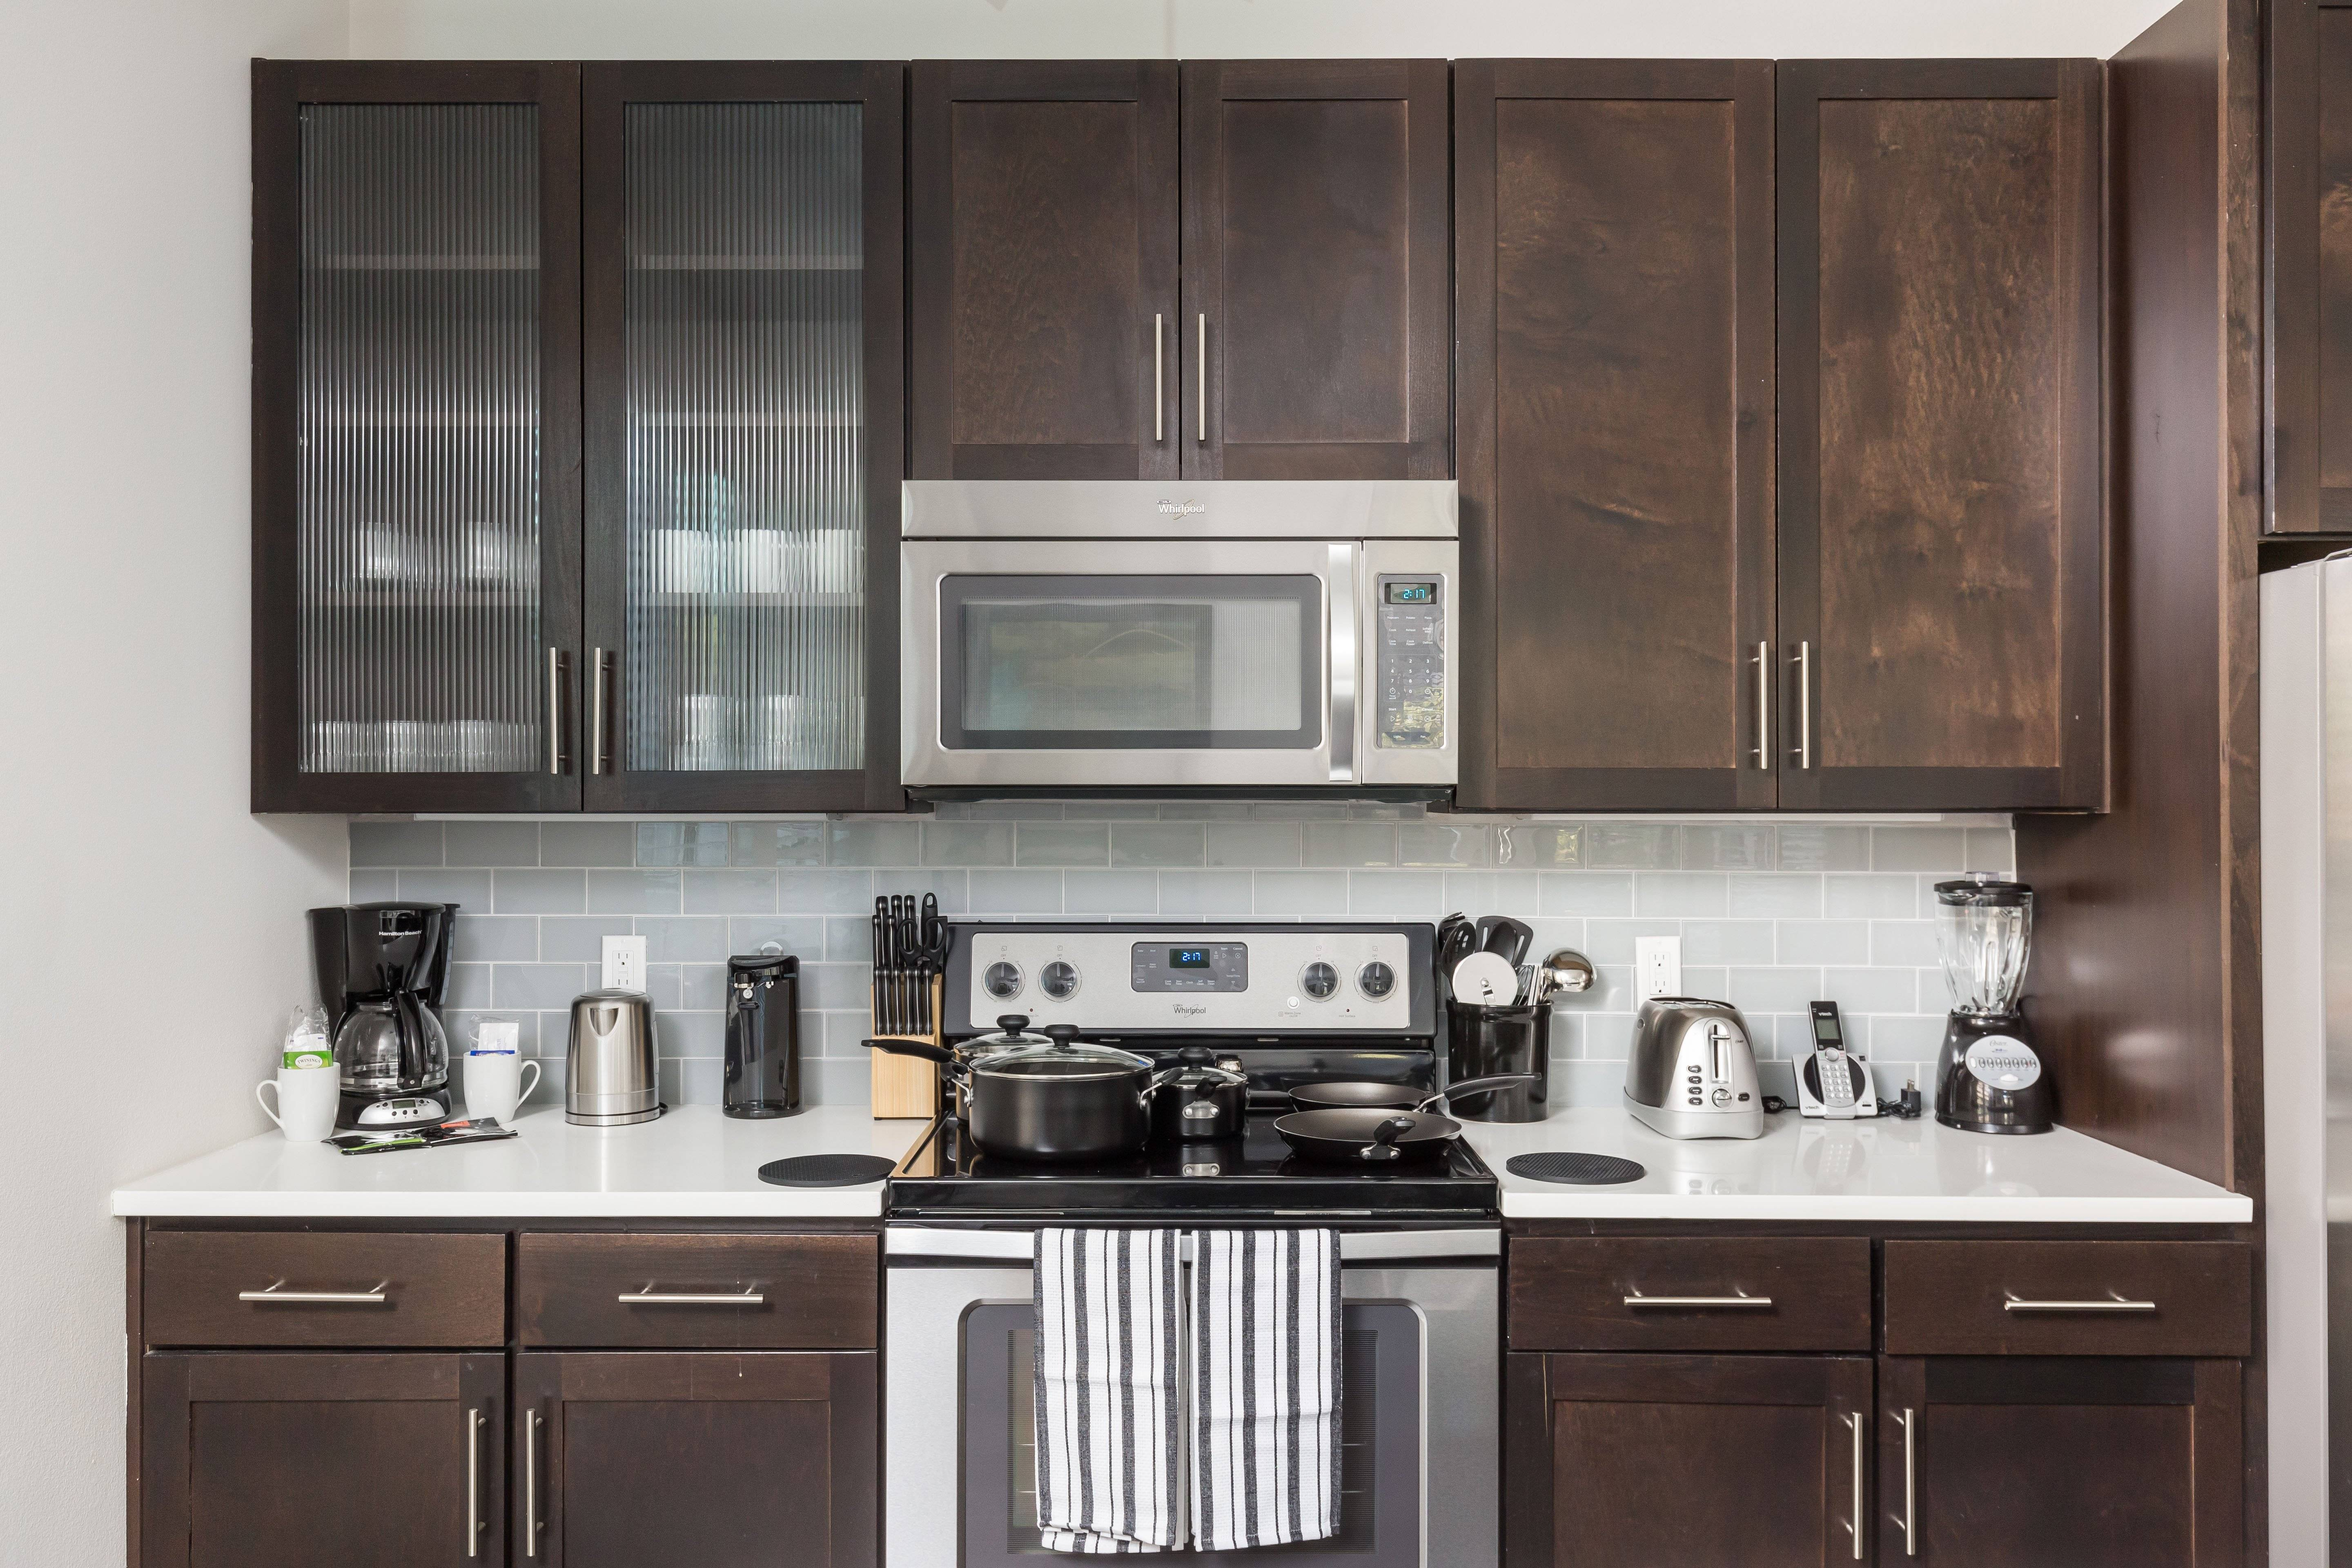 Kitchen - small appliances, cookware and dinnerware